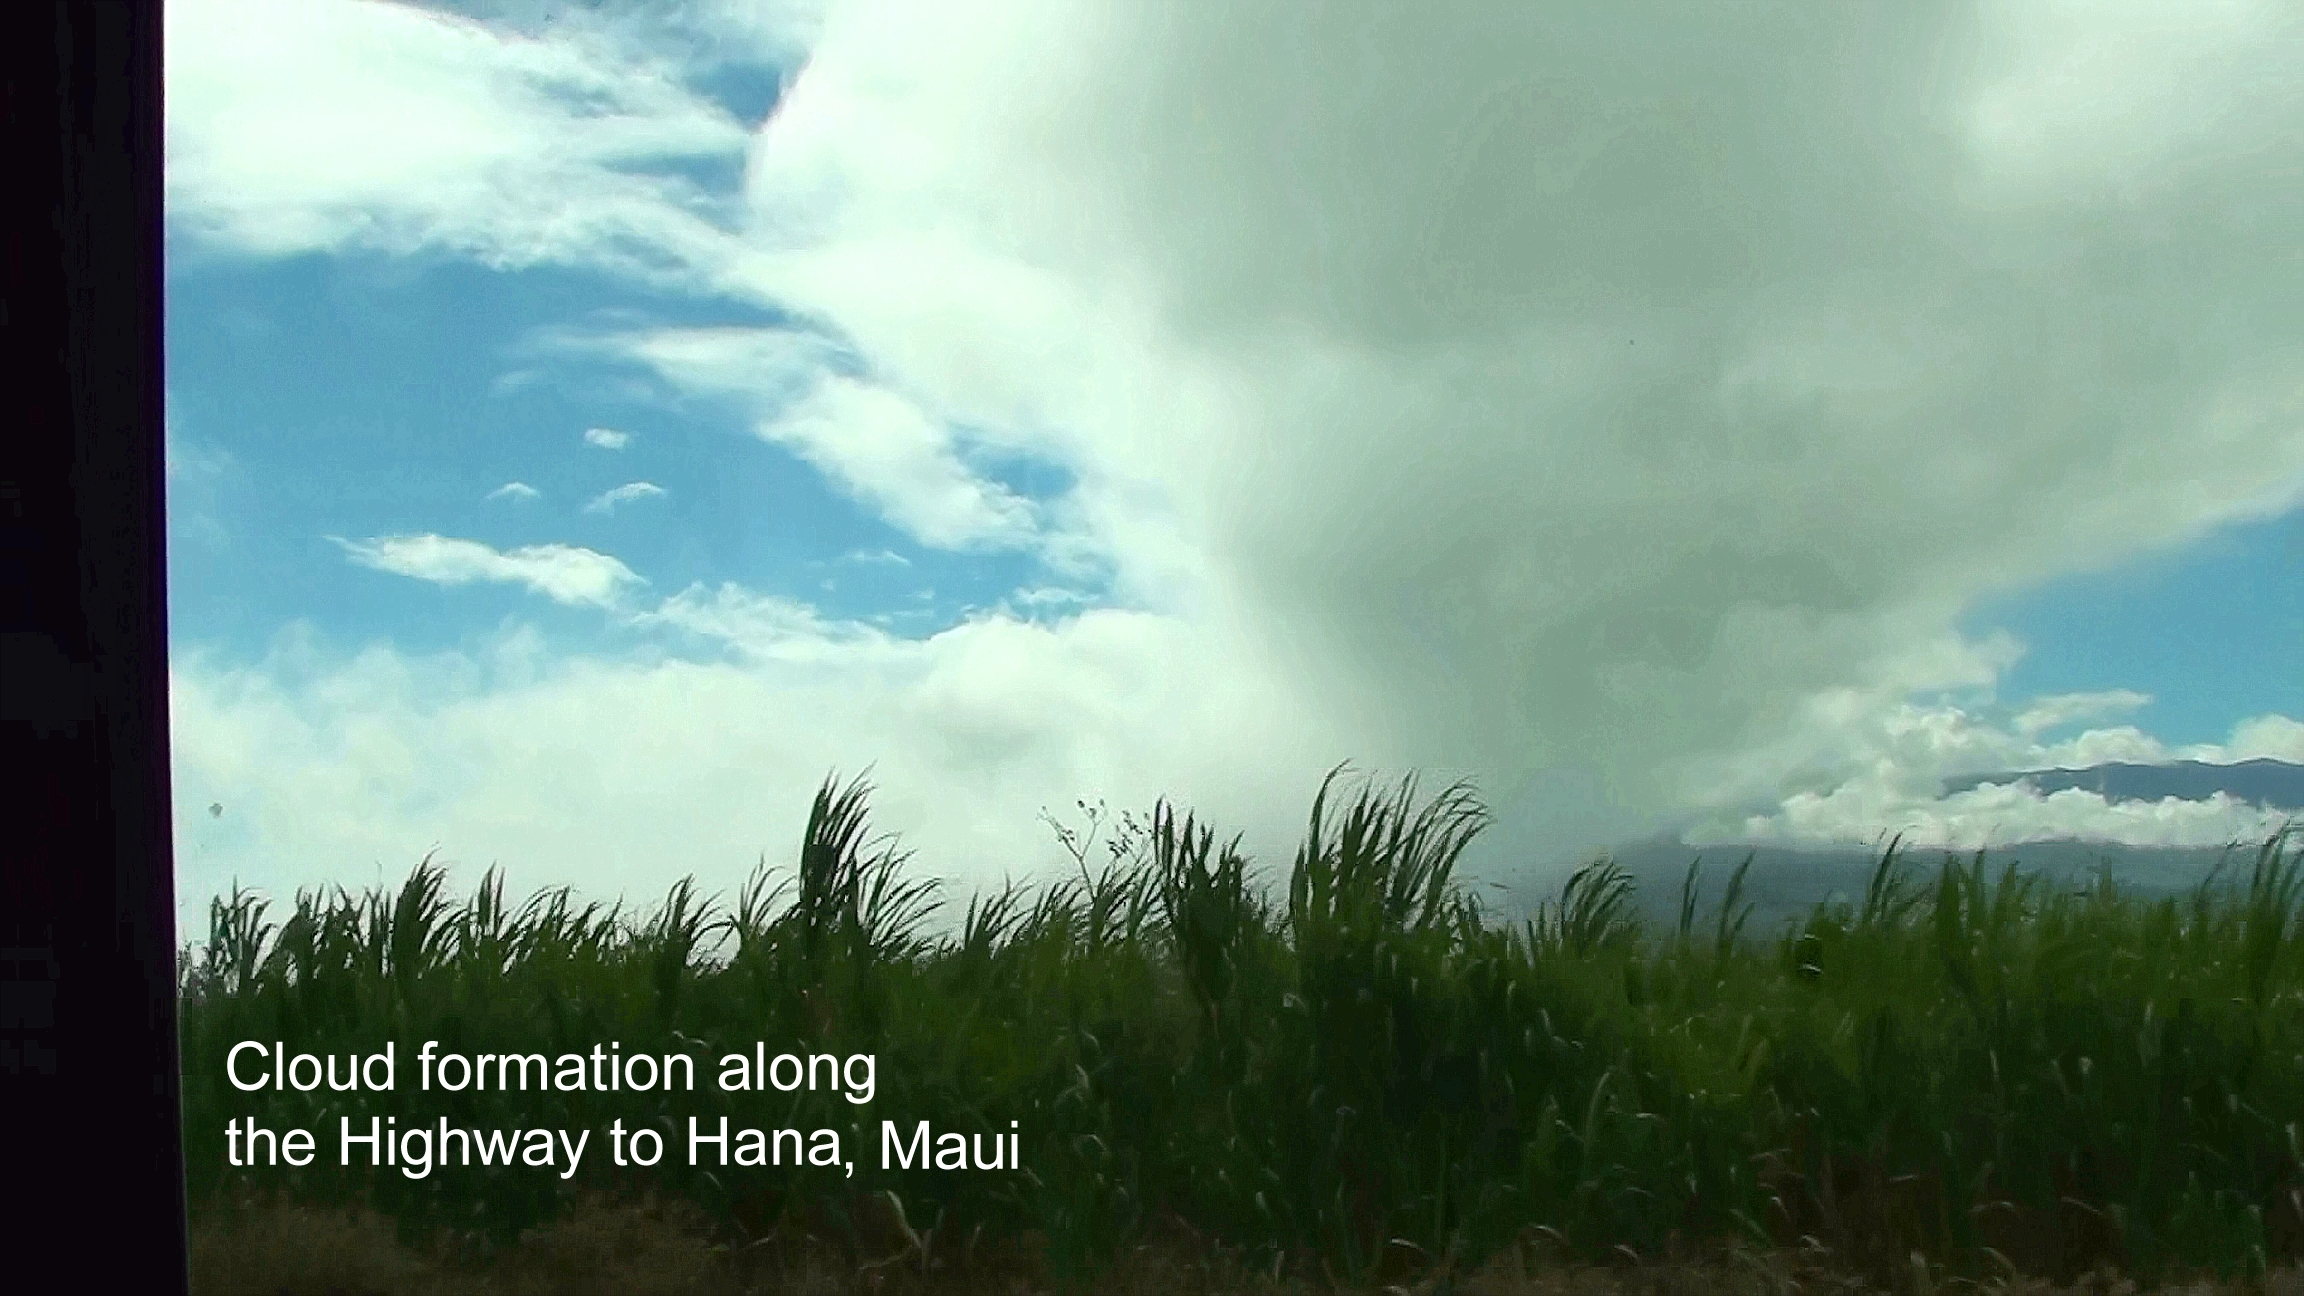 Cloud formation on the Highway to Hana